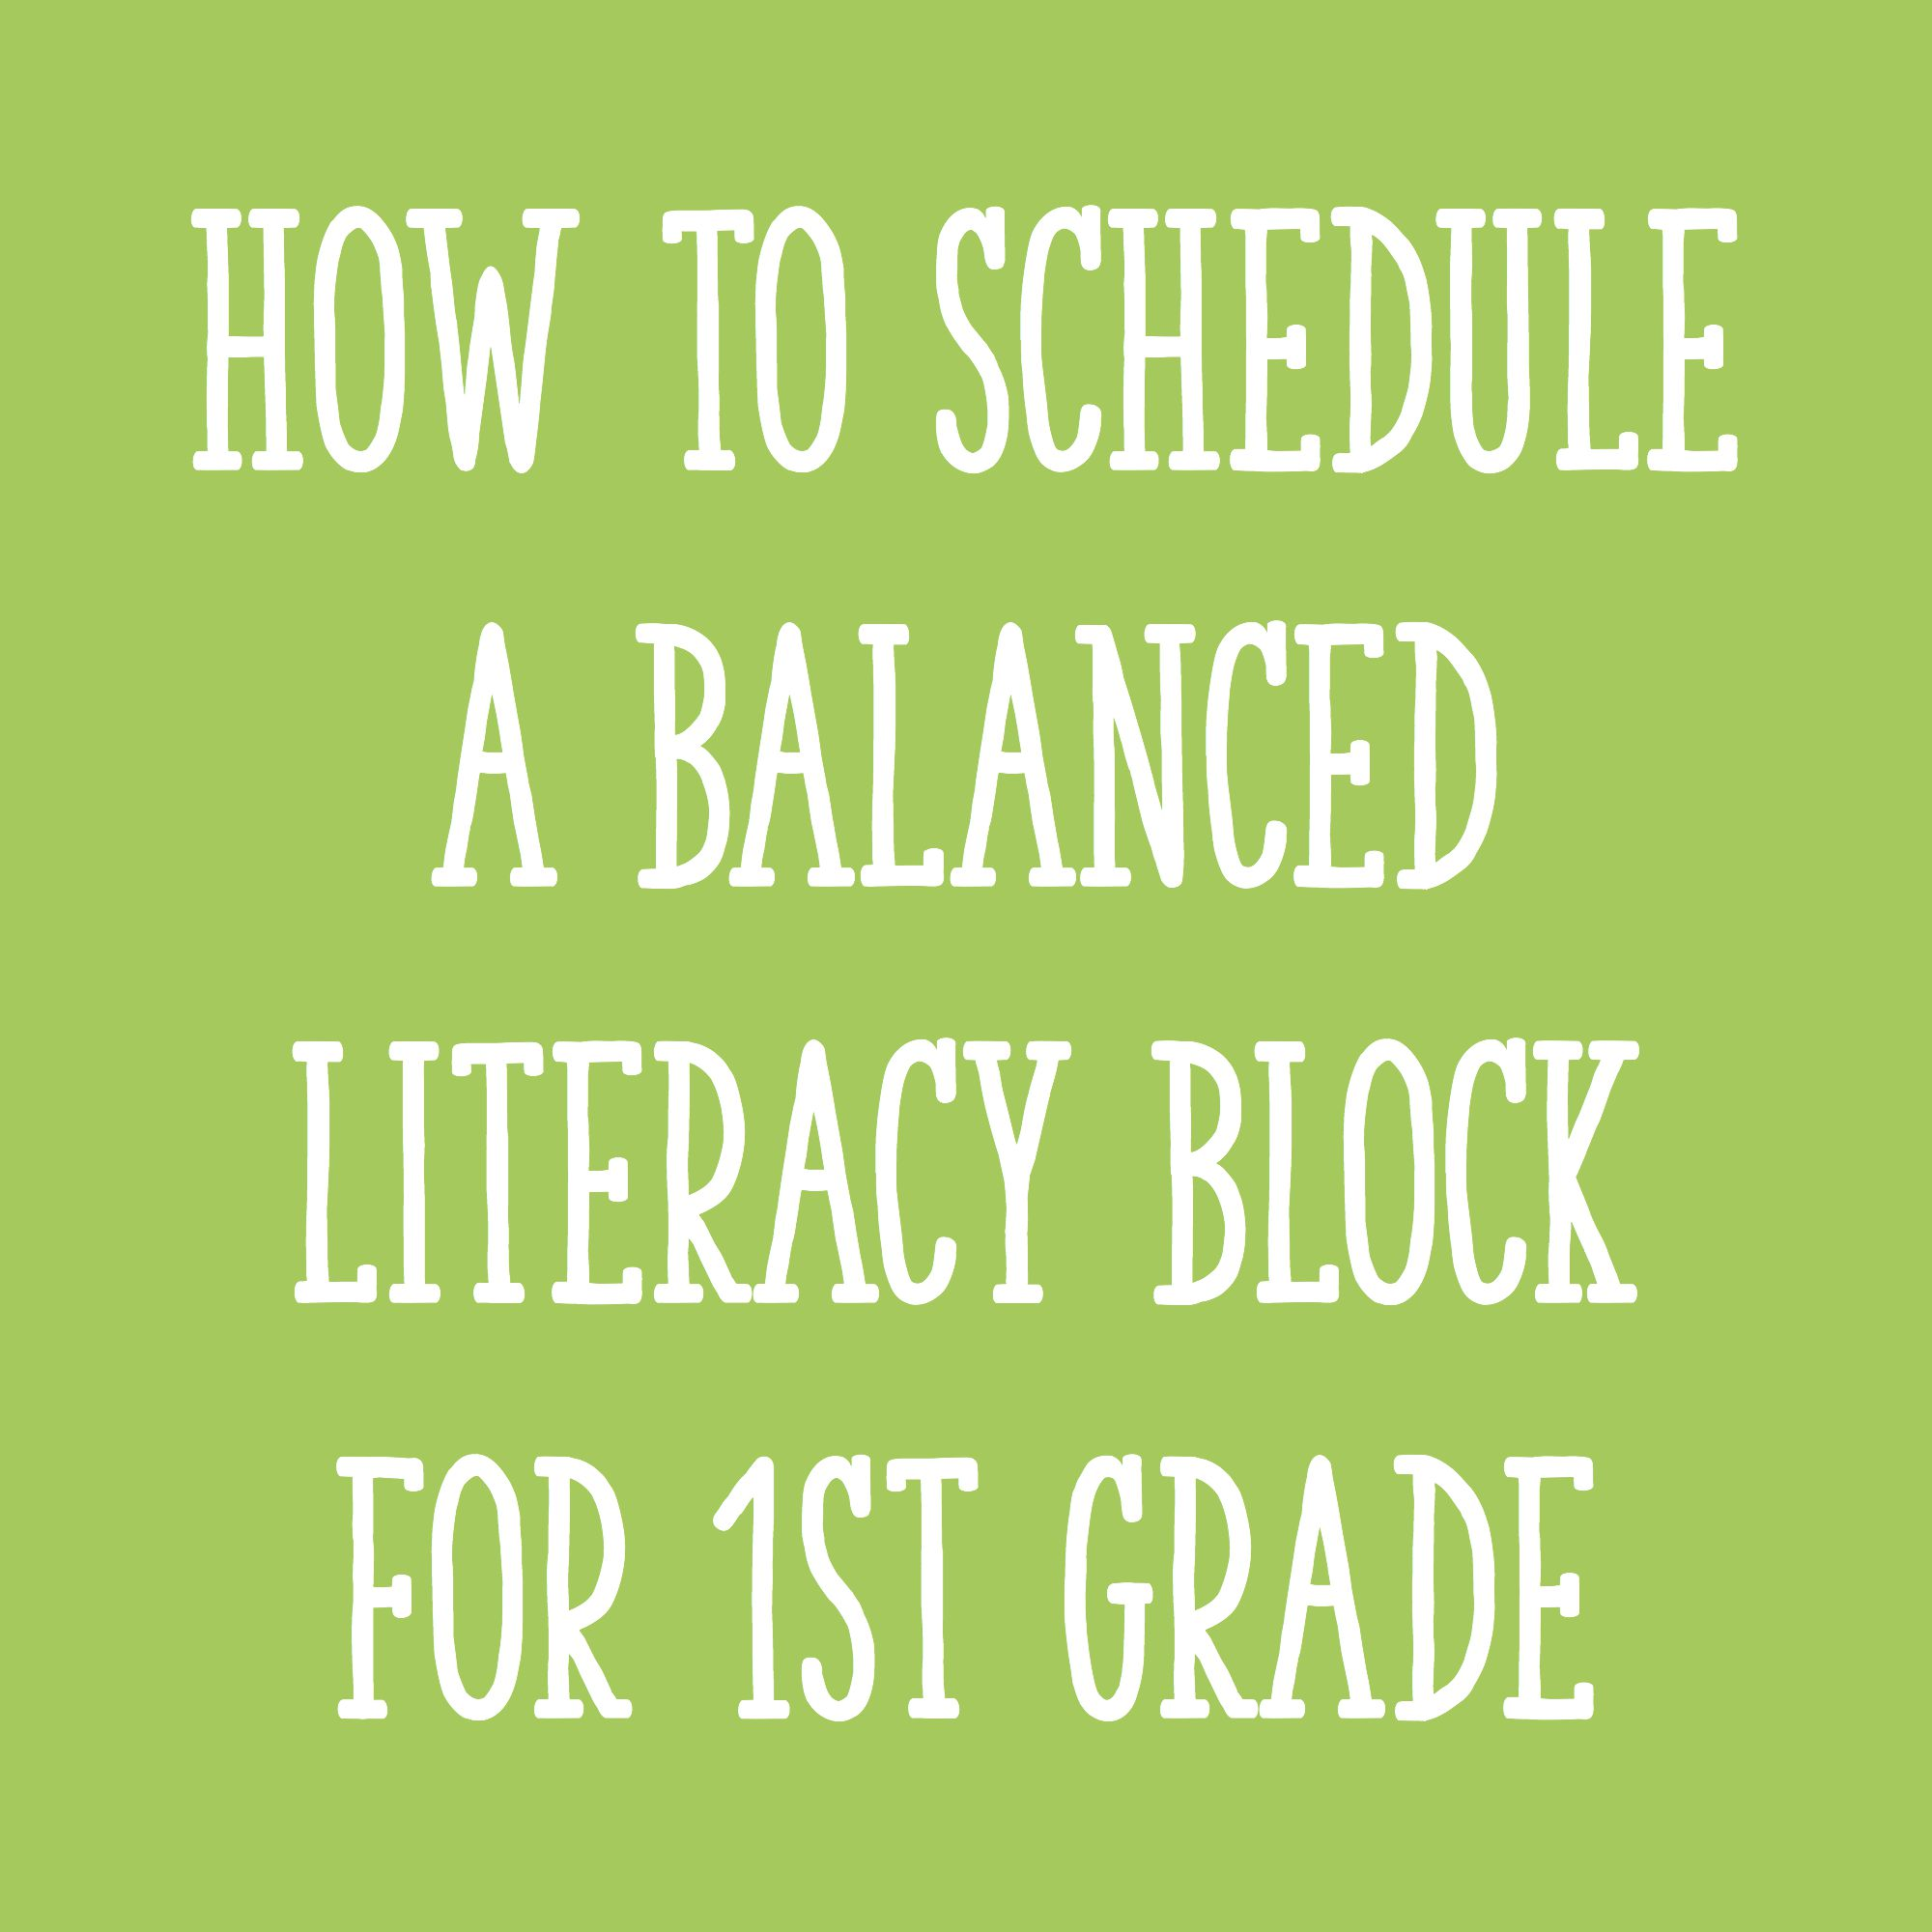 Fitting It All In How To Schedule A Balanced Literacy Block For First Grade